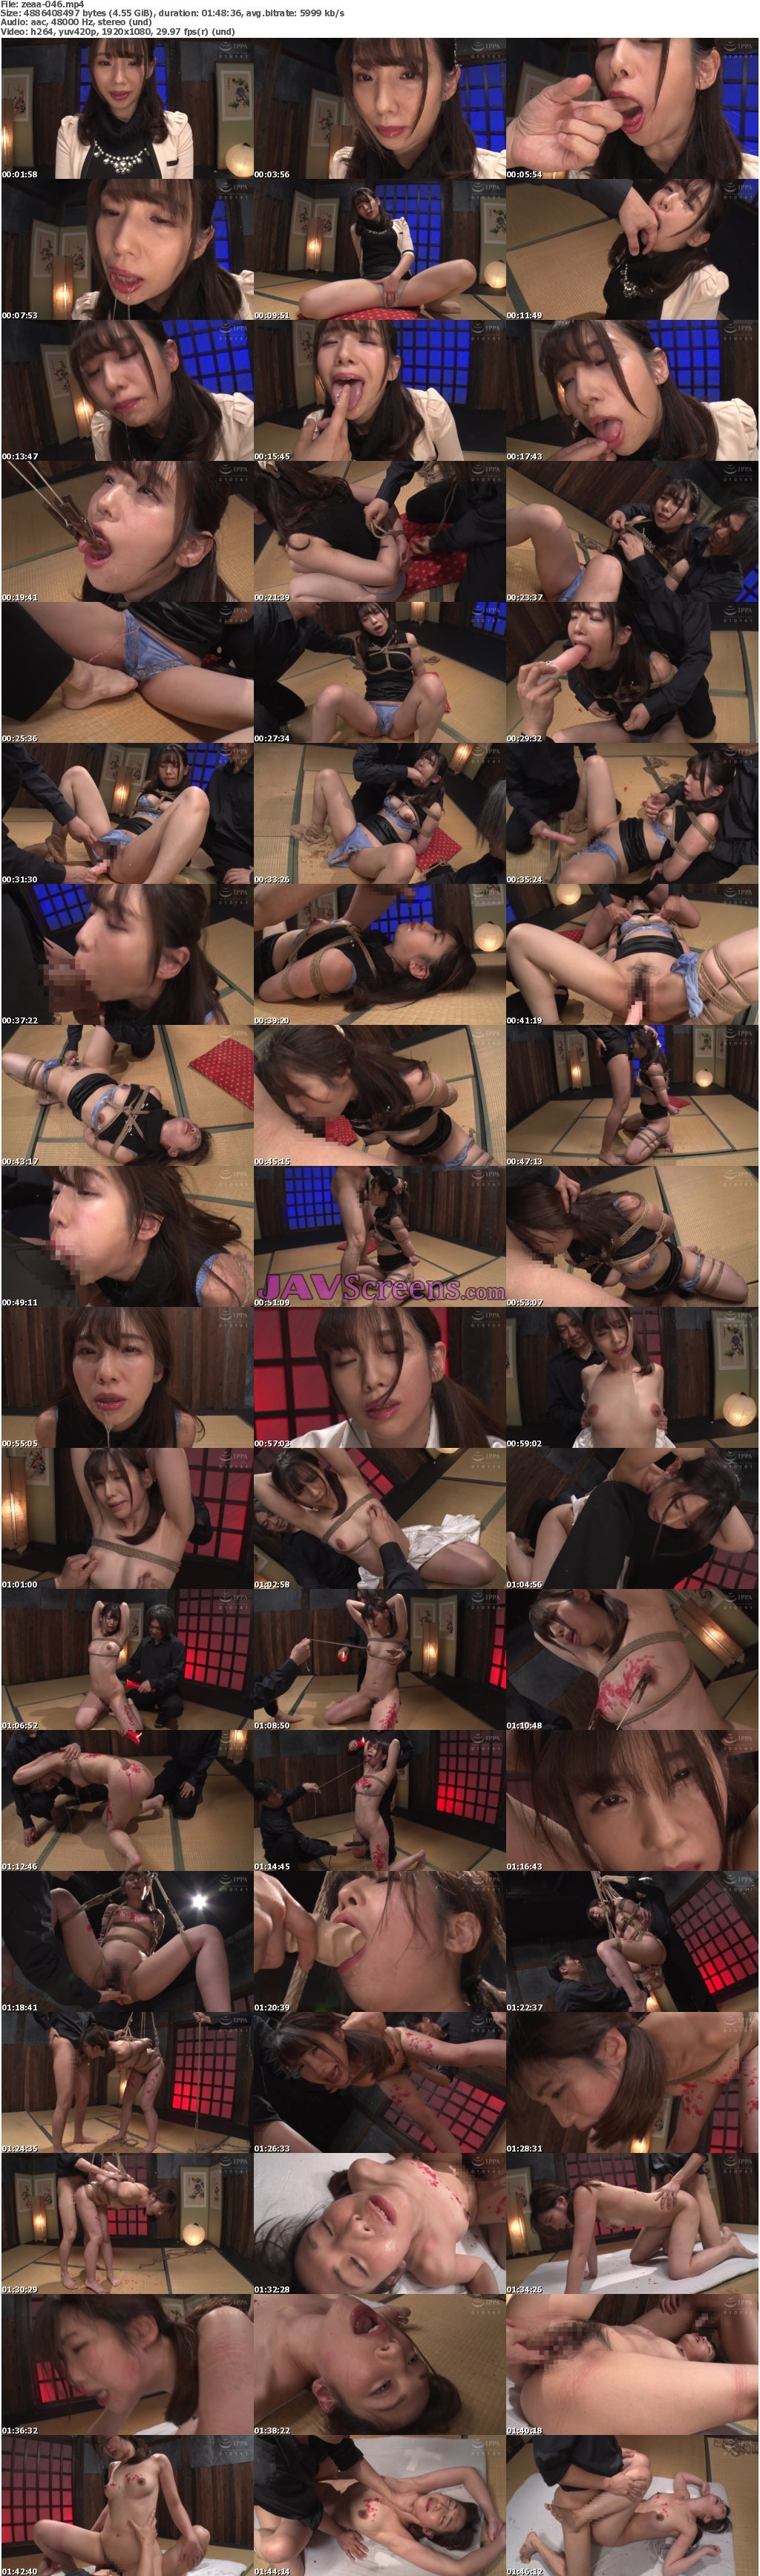 ZEAA-46.jpg - JAV Screenshot